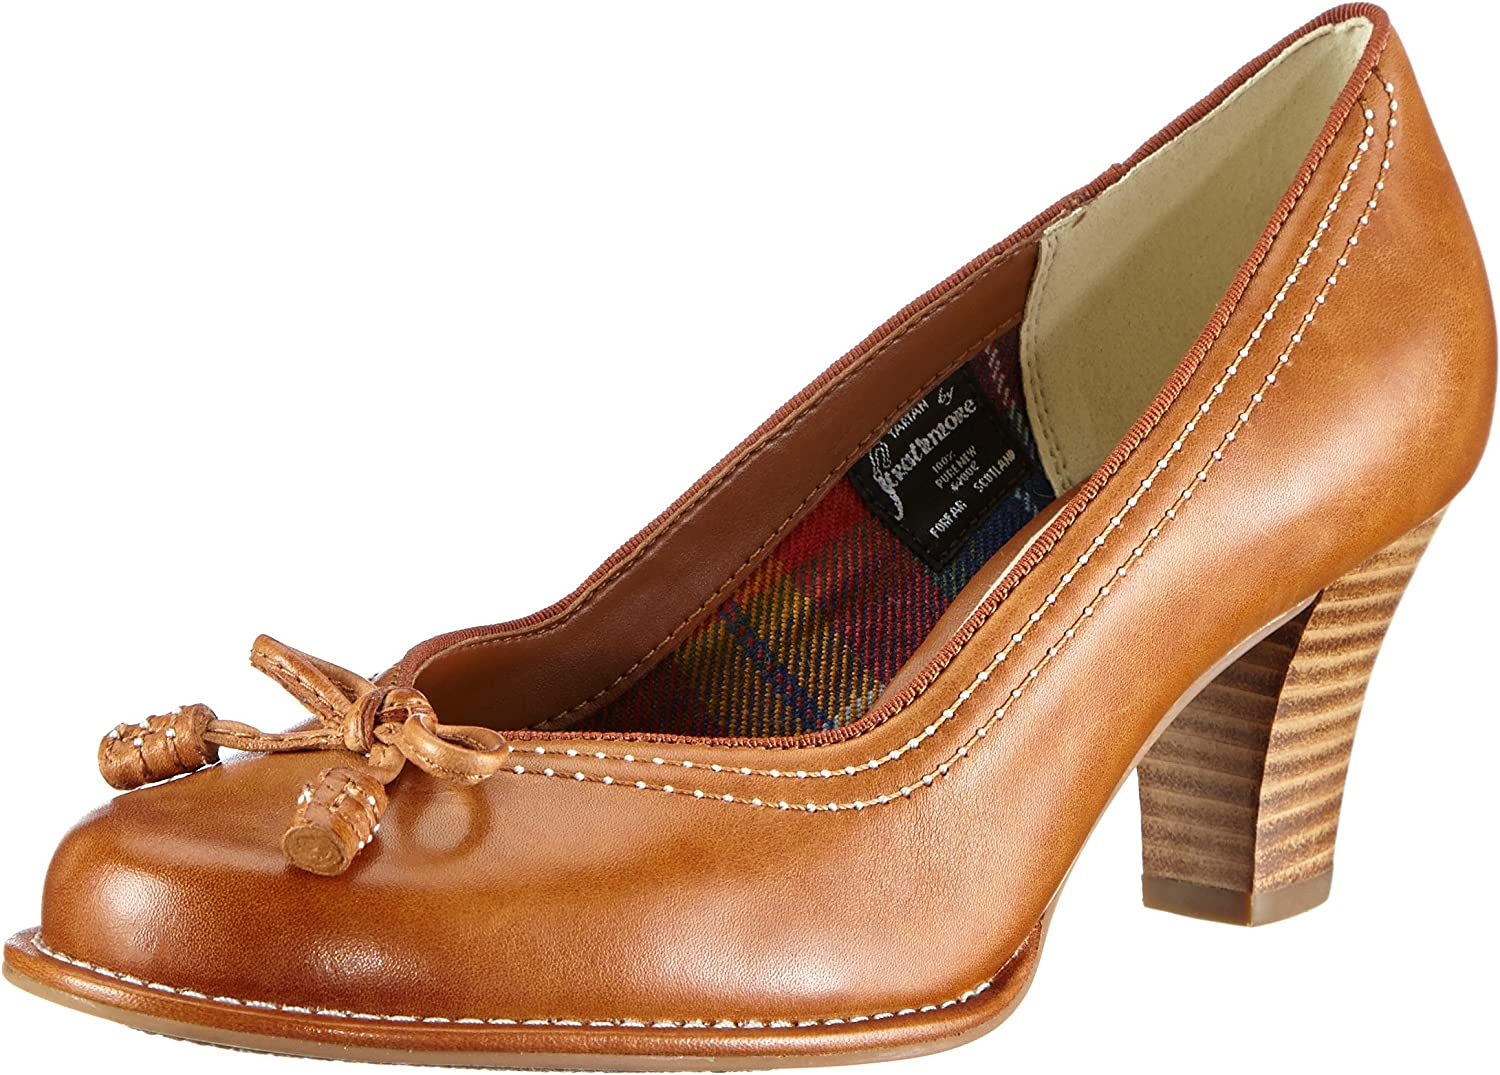 nicotine egg Diagnose  Clarks Bombay Lights, Women High Heels Brown Size: 3: Amazon.co.uk: Shoes &  Bags